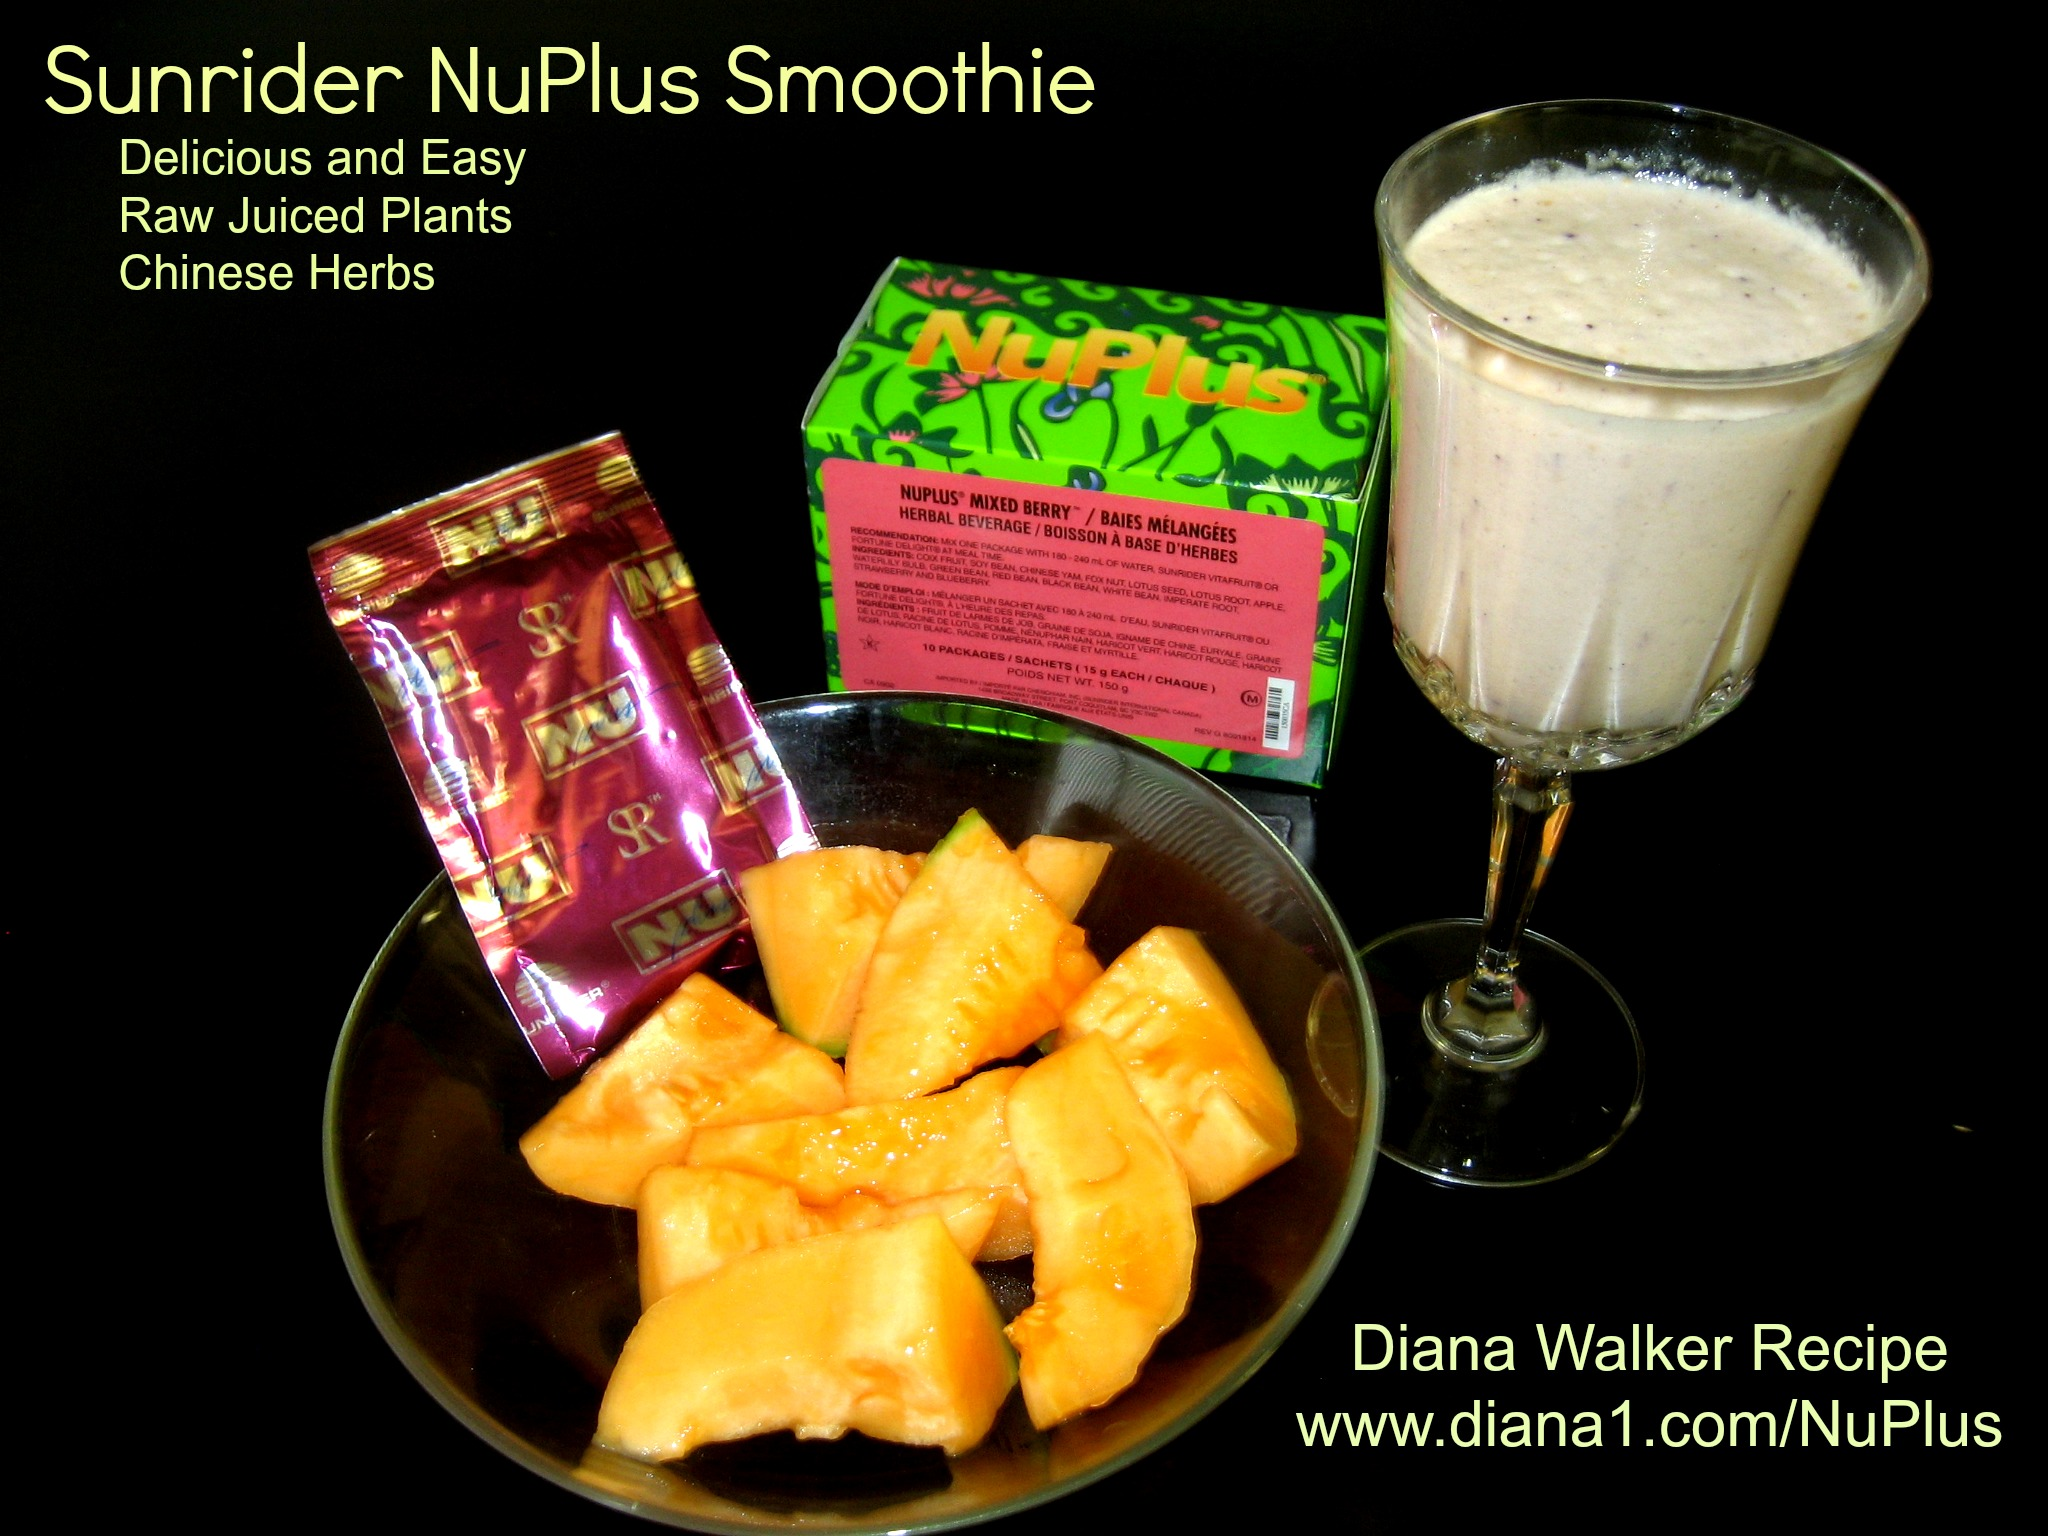 Nuplus from sunrider is raw food with health benefits